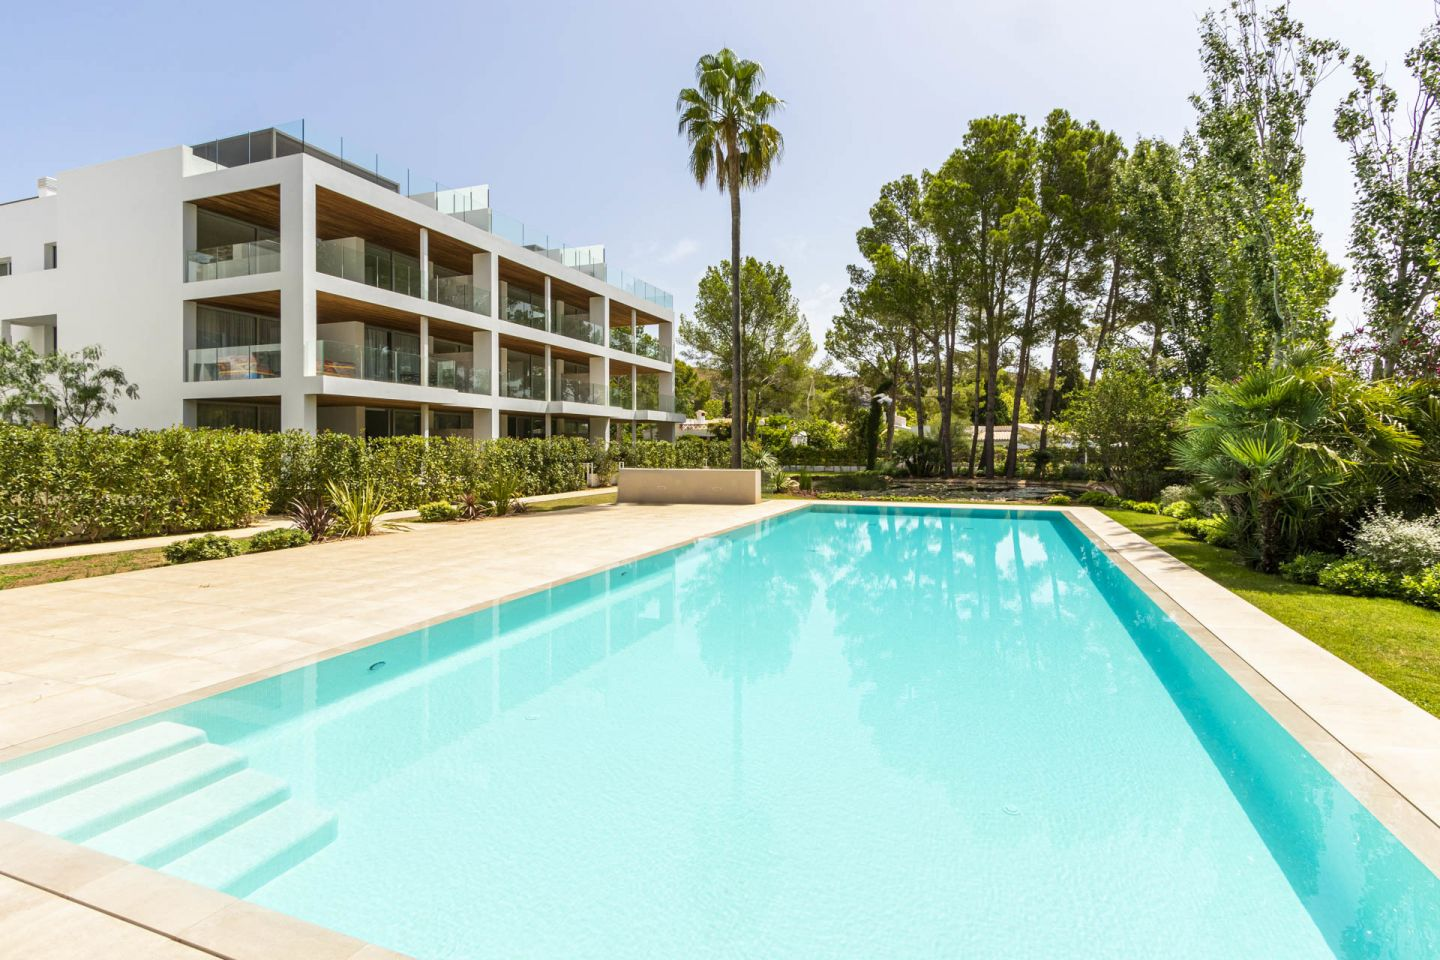 3 Bed Penthouse for sale in PUERTO POLLENSA 1